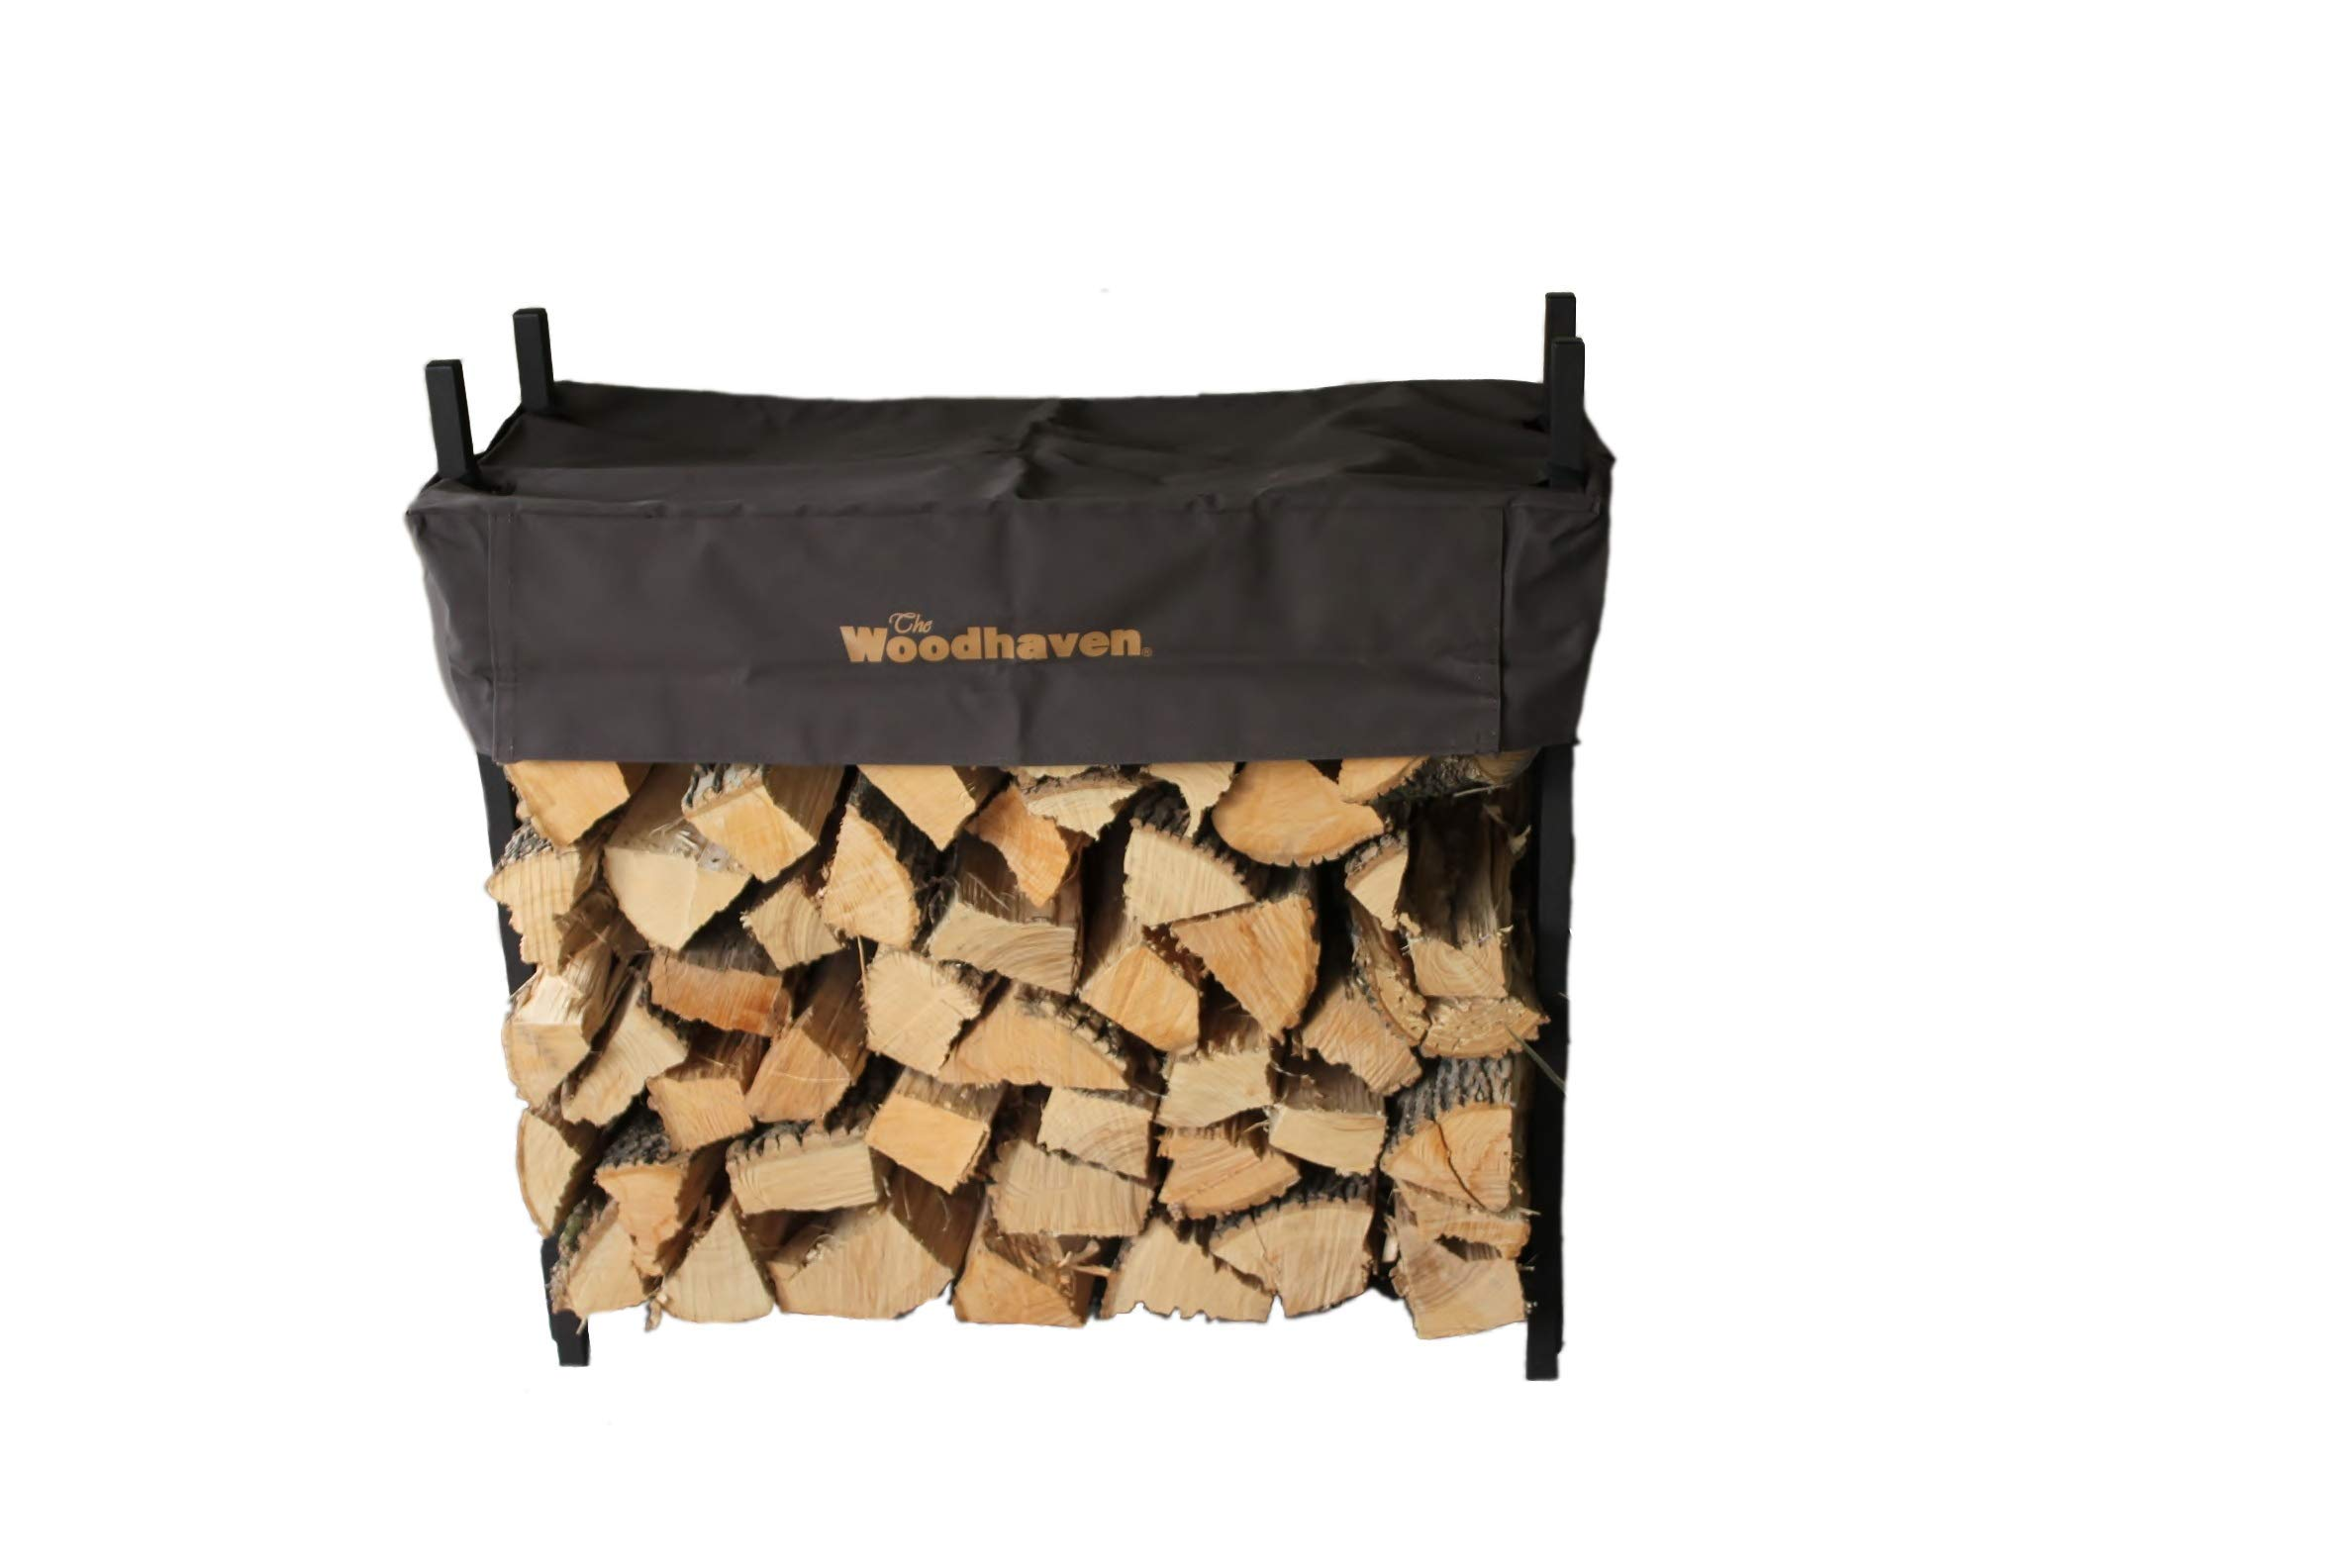 Woodhaven The 3 Foot Brown Firewood Log Rack with Cover by Woodhaven